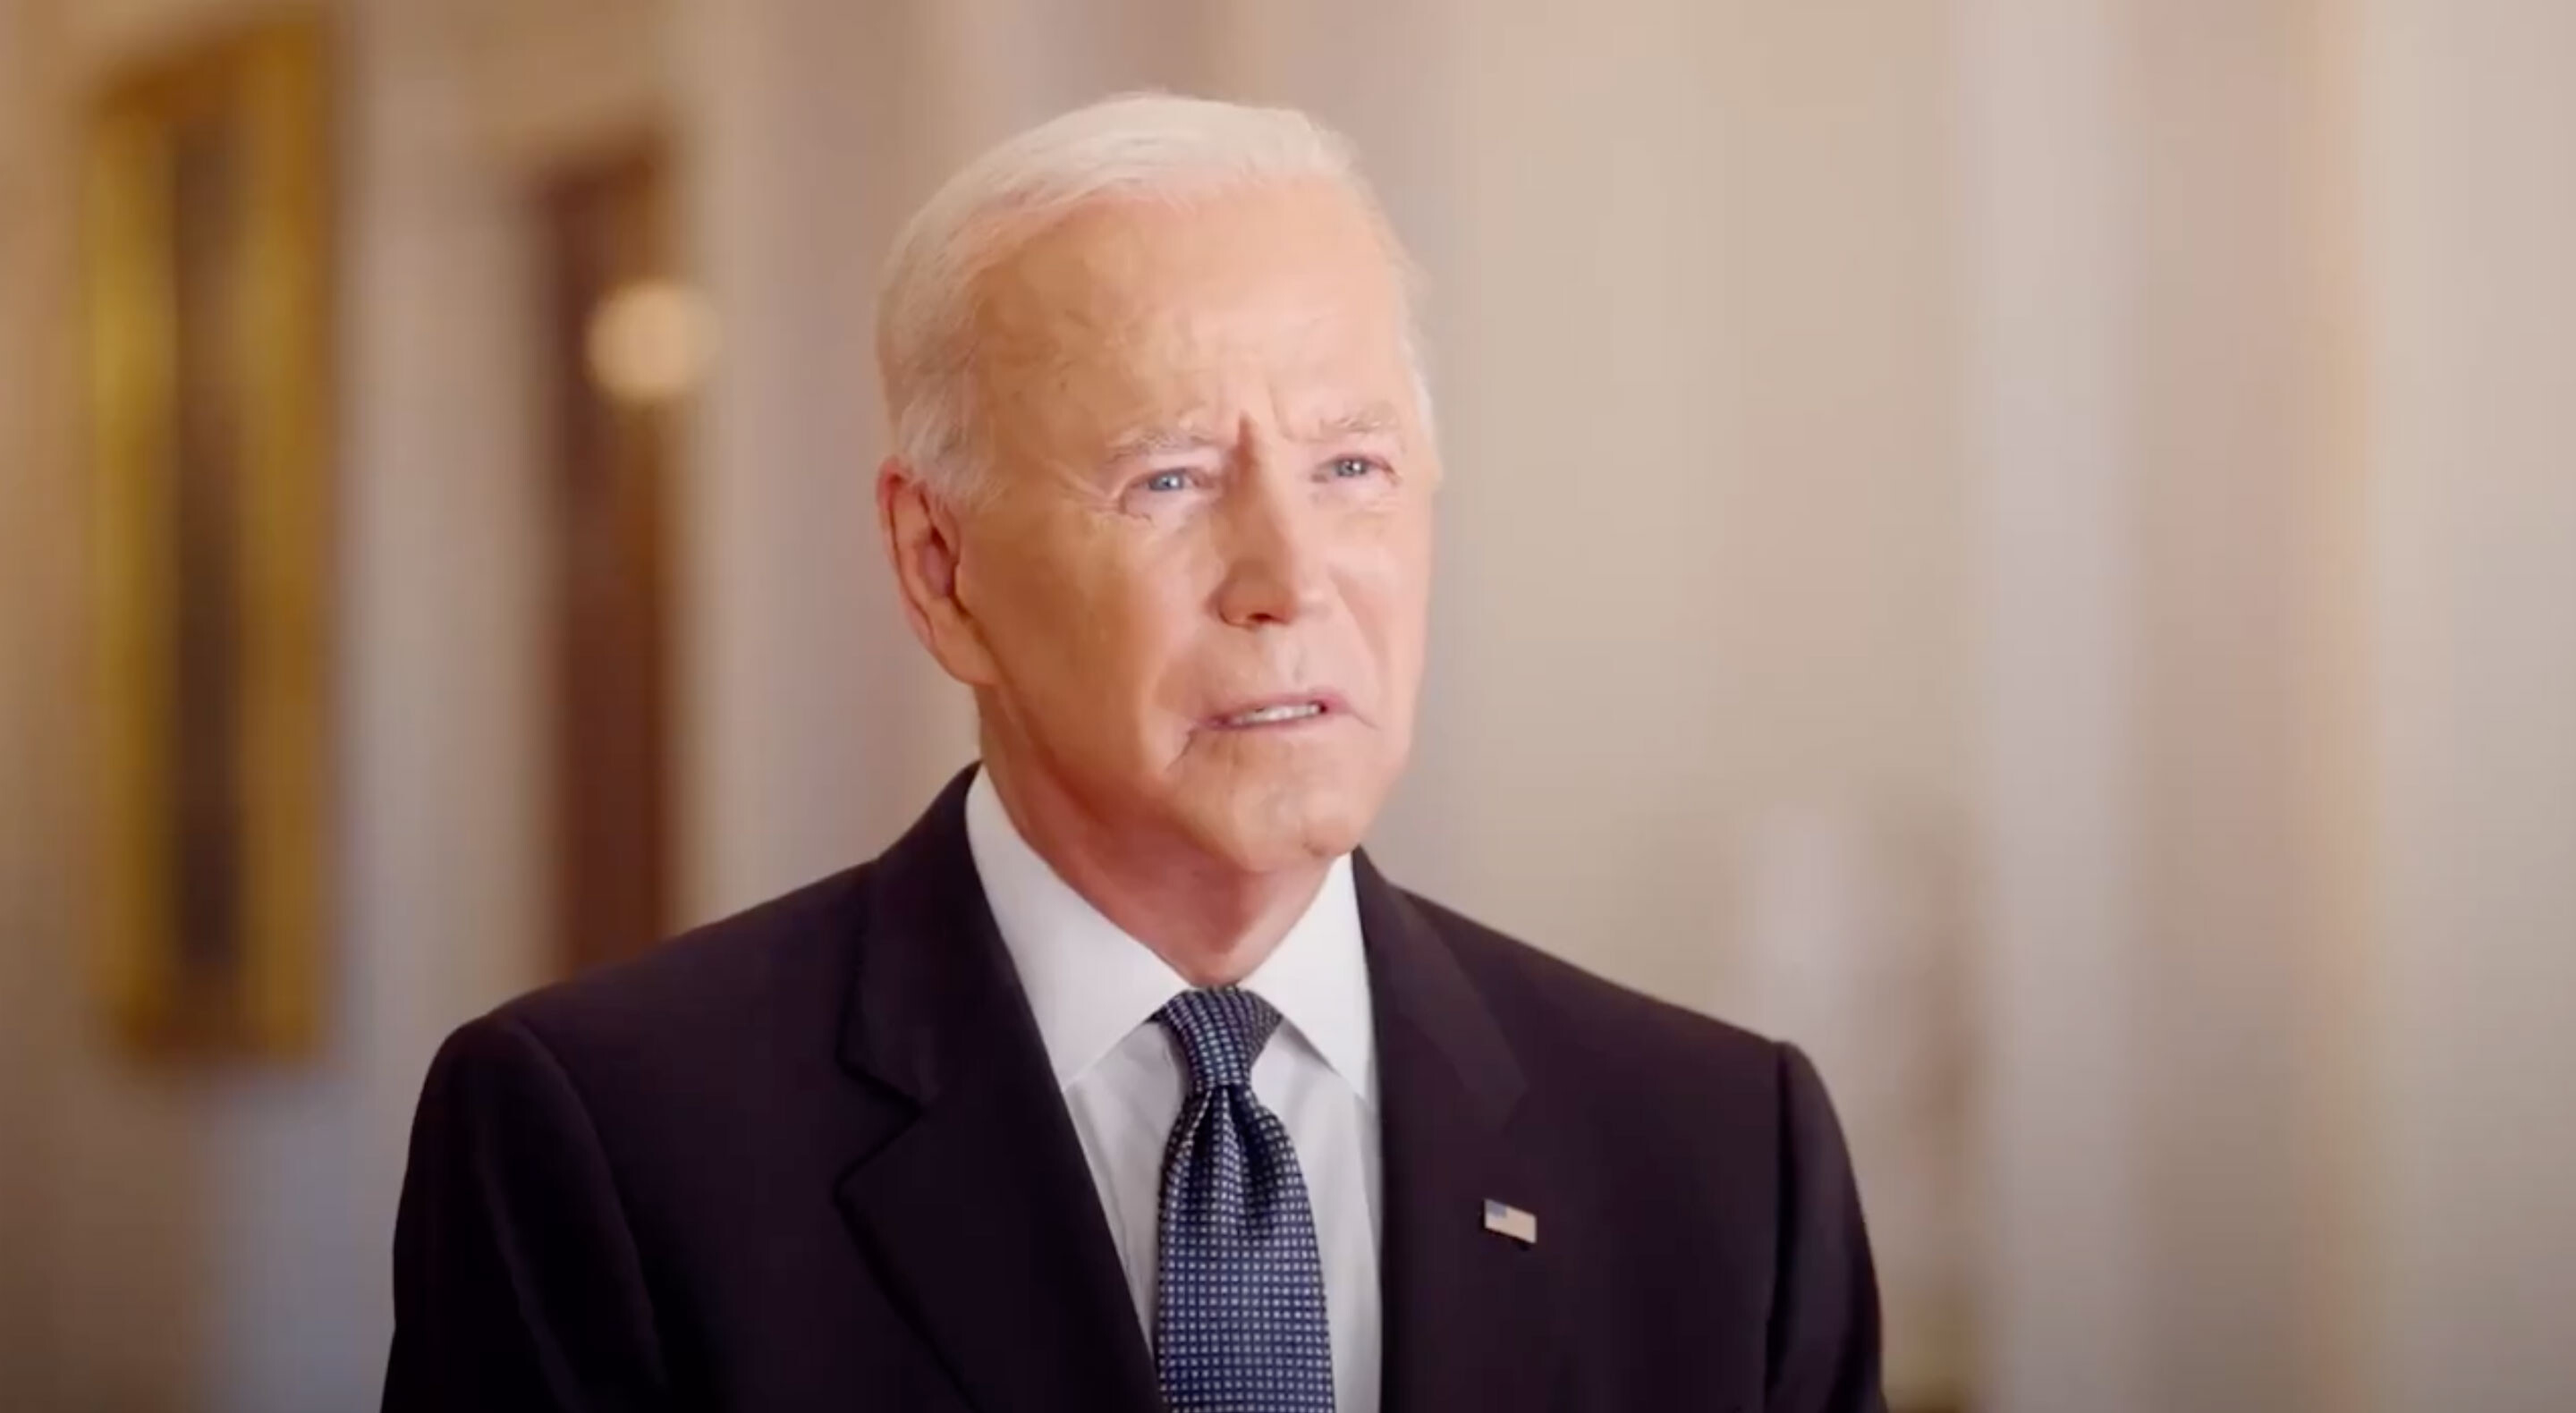 Biden releases video commemorating 9/11 attacks ahead of 20th anniversary